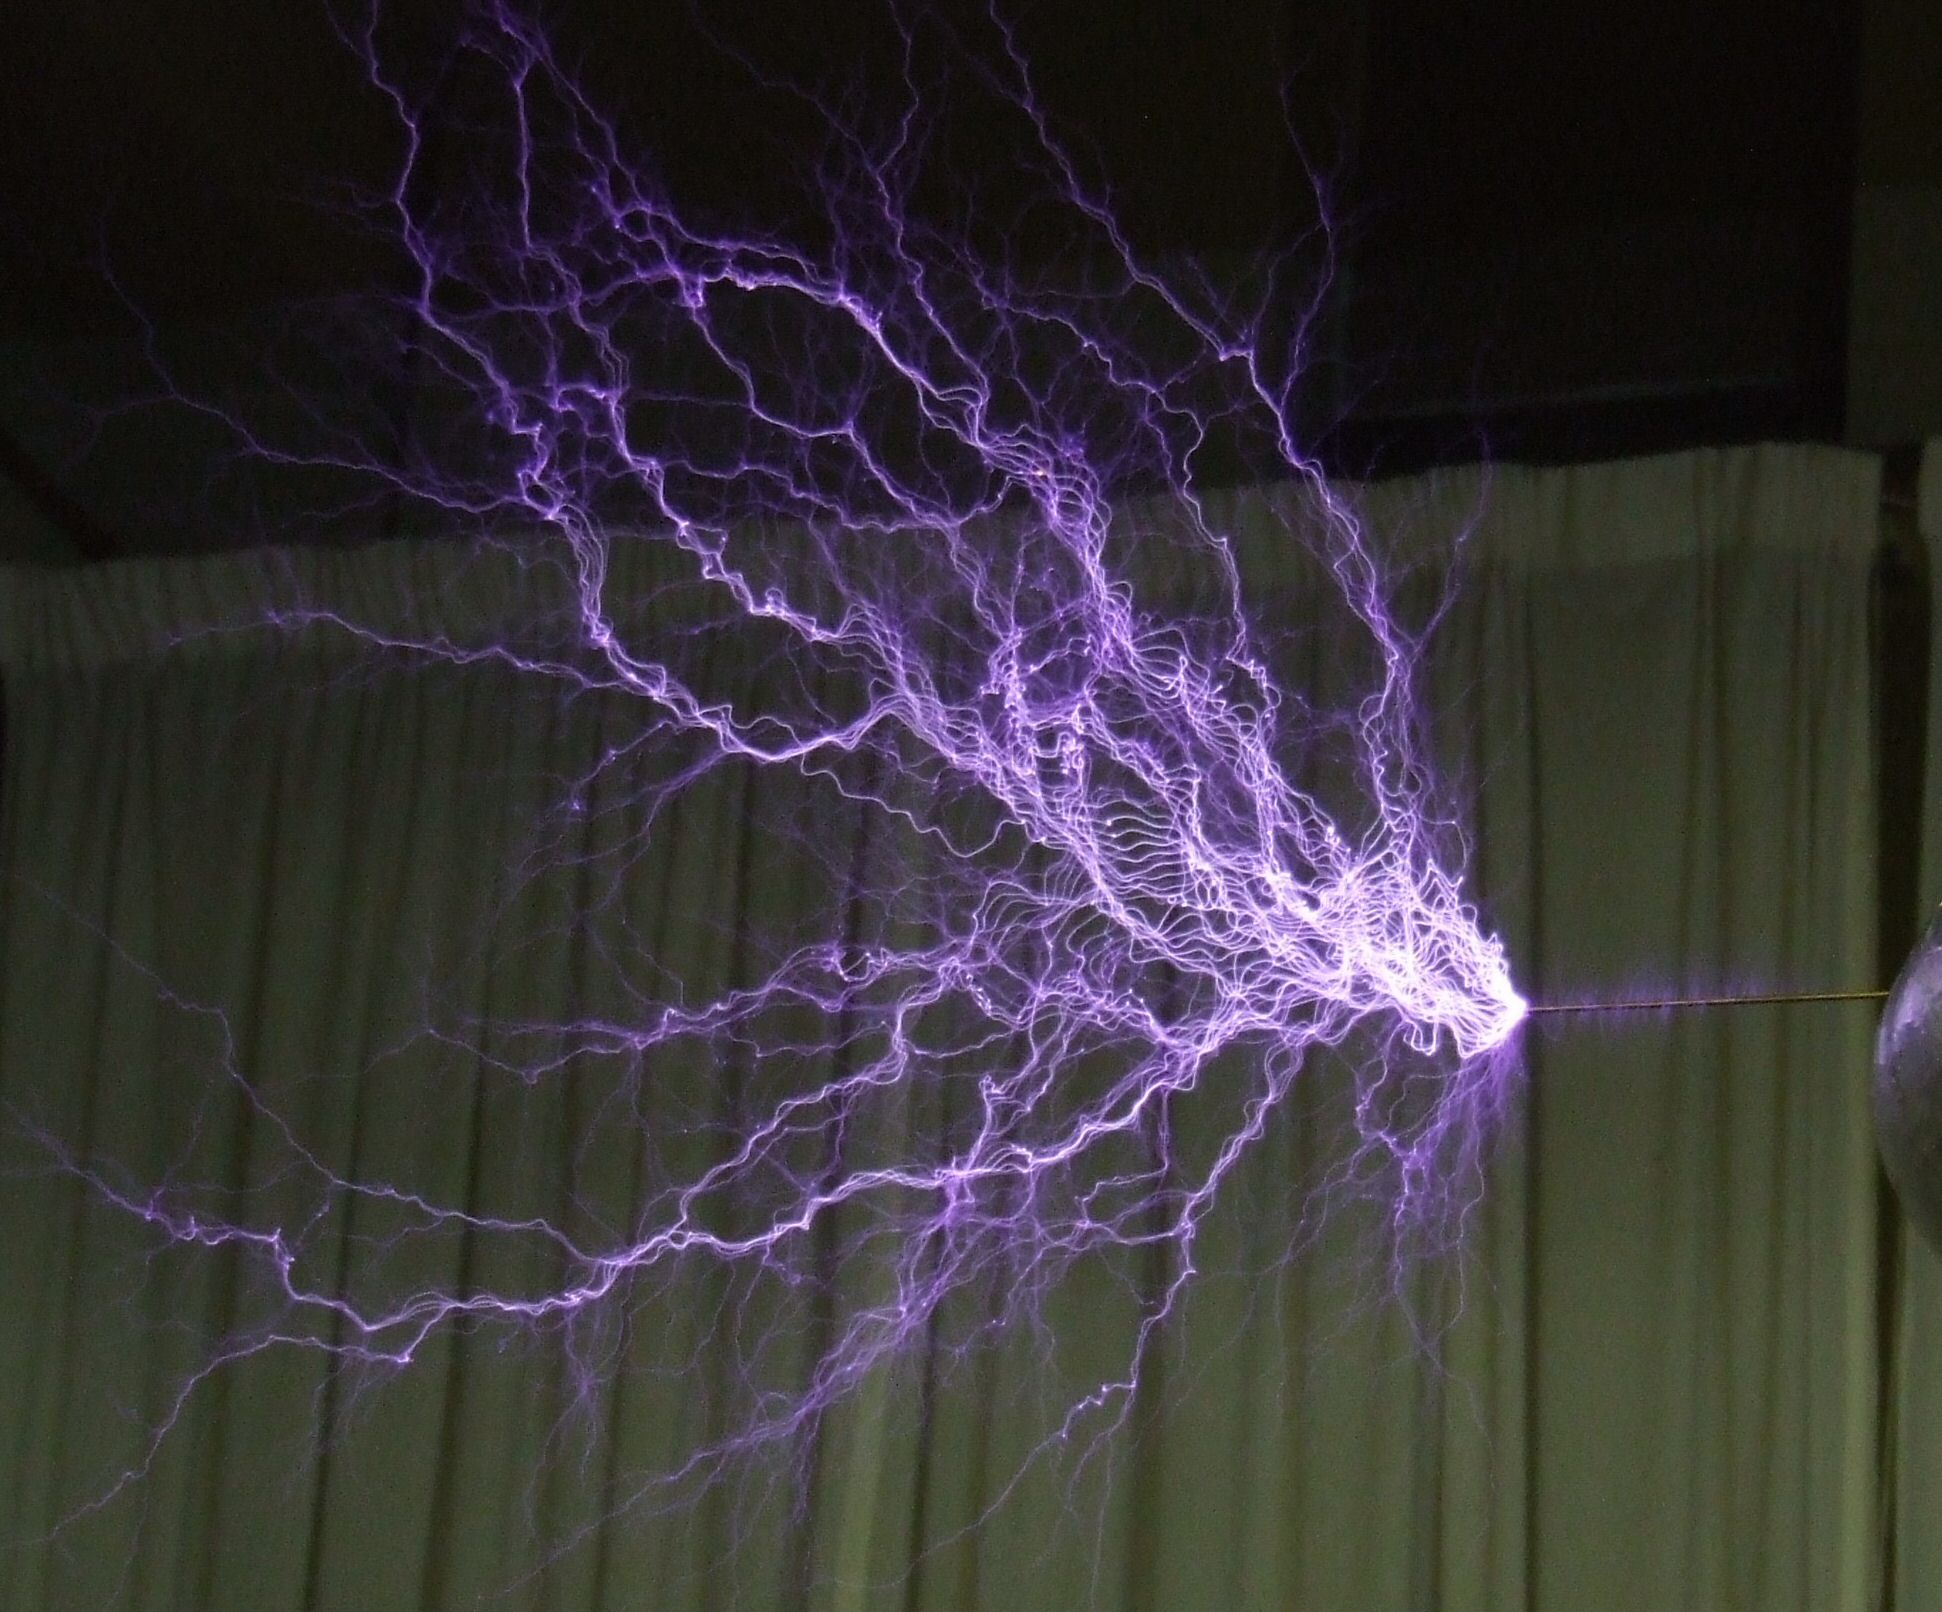 hight resolution of electric discharge showing the lightning like plasma filaments from a tesla coil